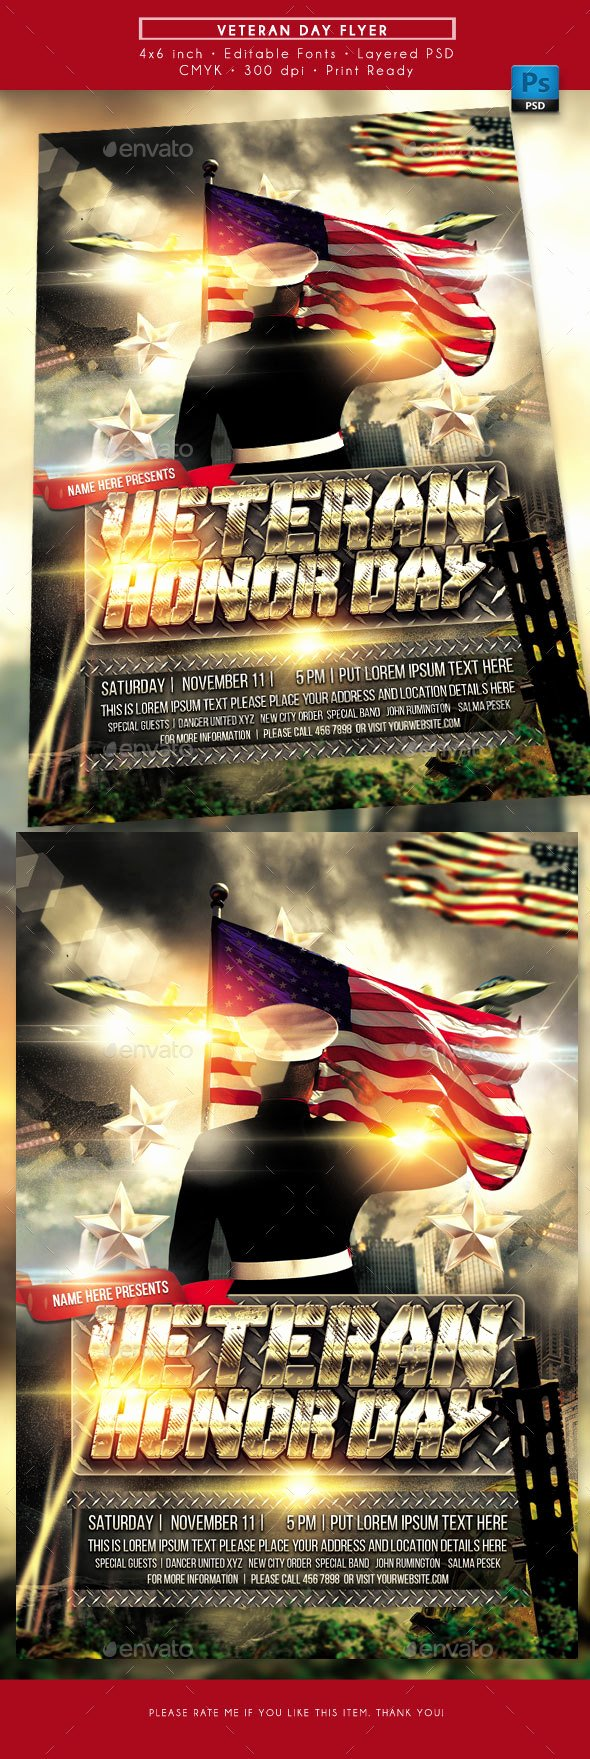 Veterans Day Flyer Template Free Inspirational Veterans Day Flyer by Rudydesign